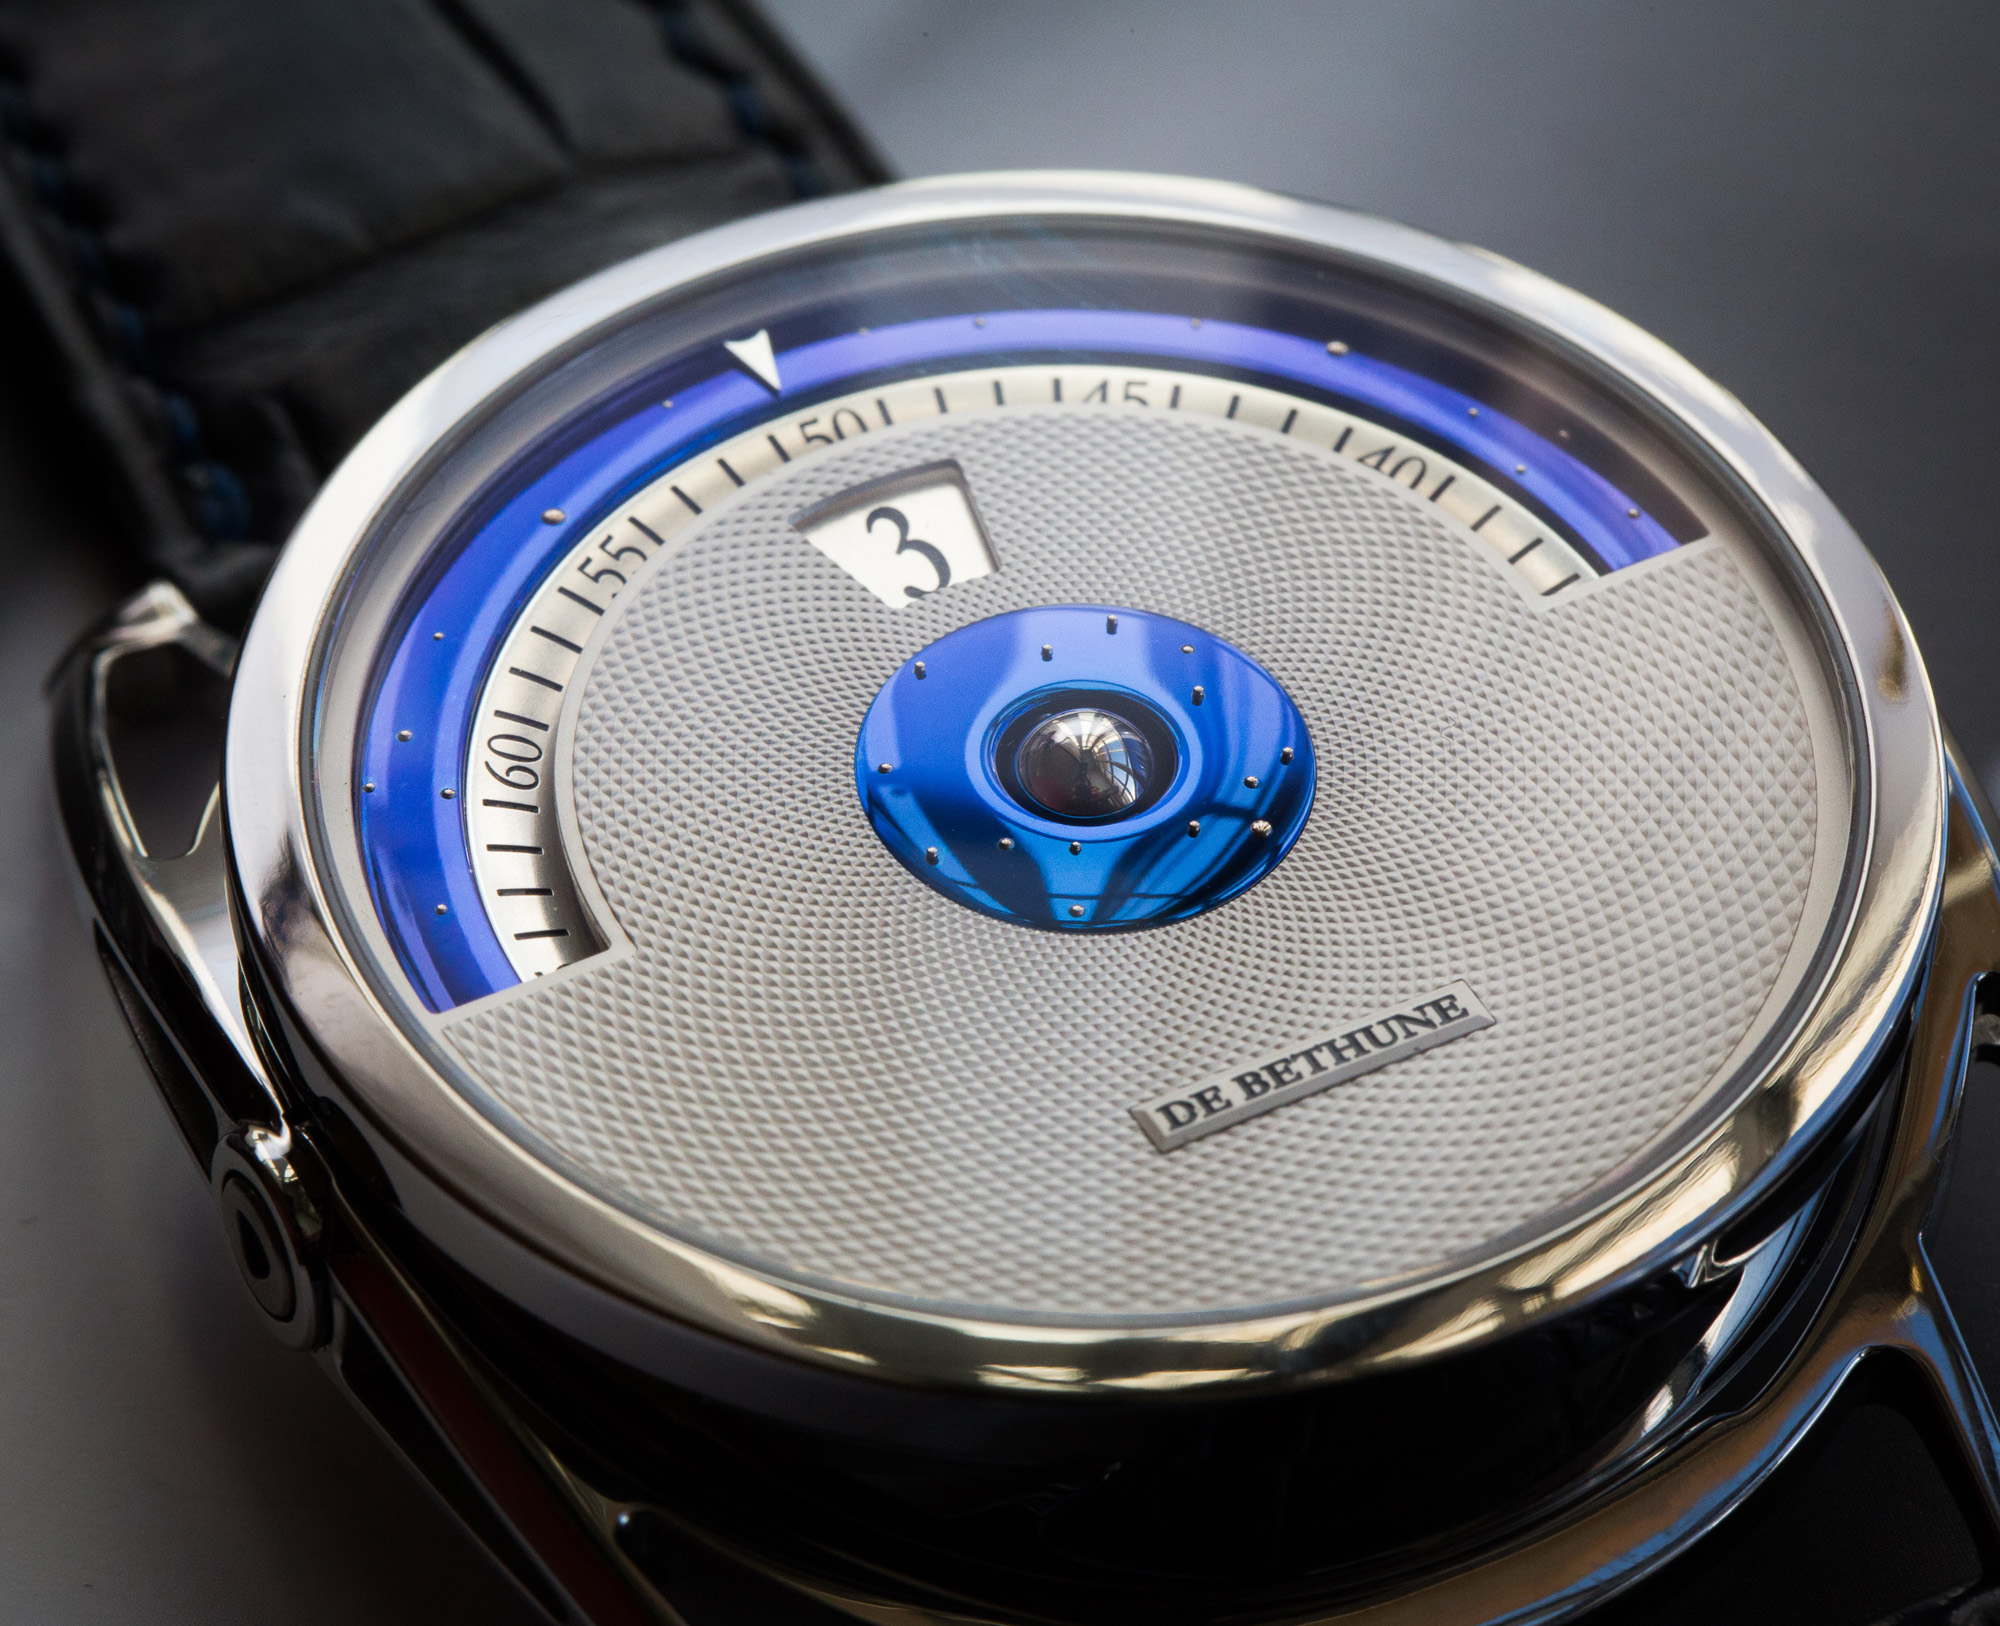 De Bethune DB28 Digital